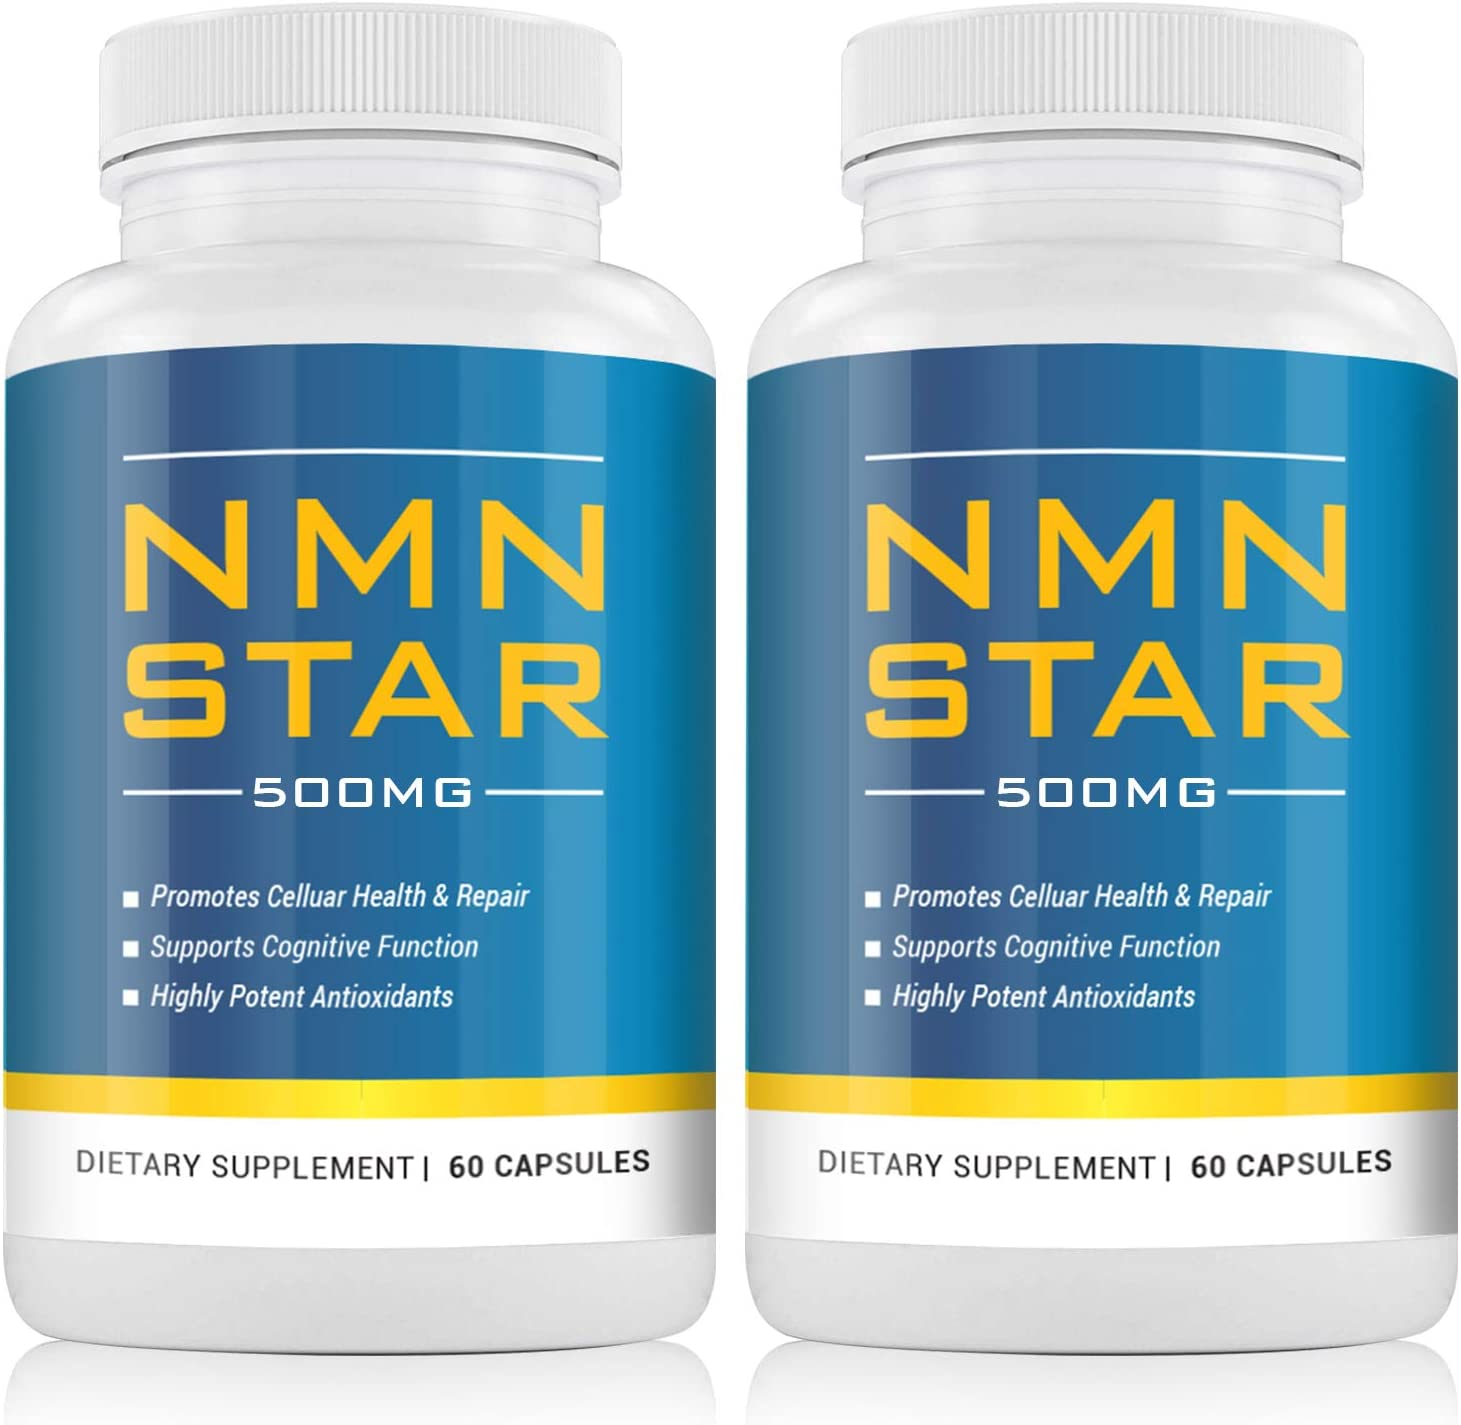 NMN Nicotinamide Mononucleotide Supplement Save money Oklahoma City Mall 500mg Stabilized Fo